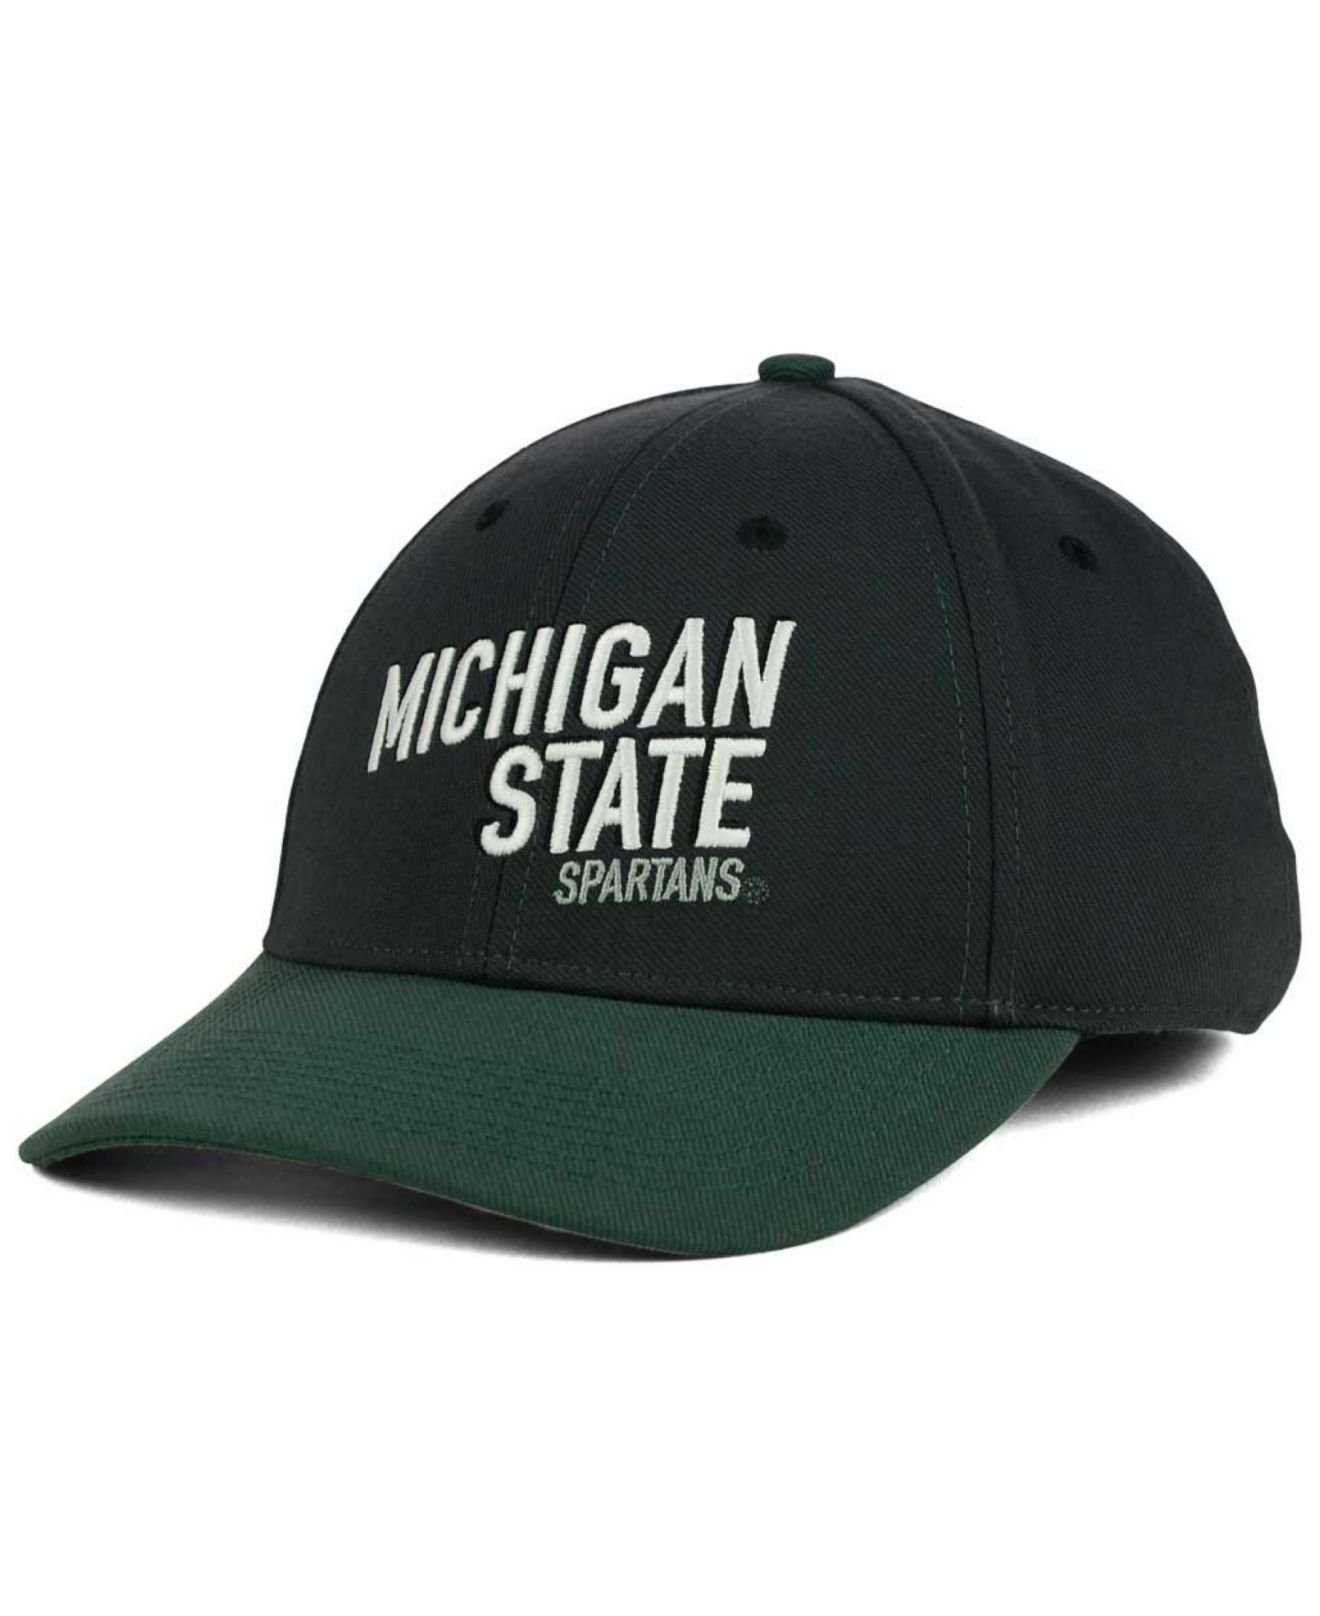 ... coupon for lyst nike michigan state spartans l91 swooshflex cap in gray  for men 2d1ba e8c48 9e61a65ed5c2